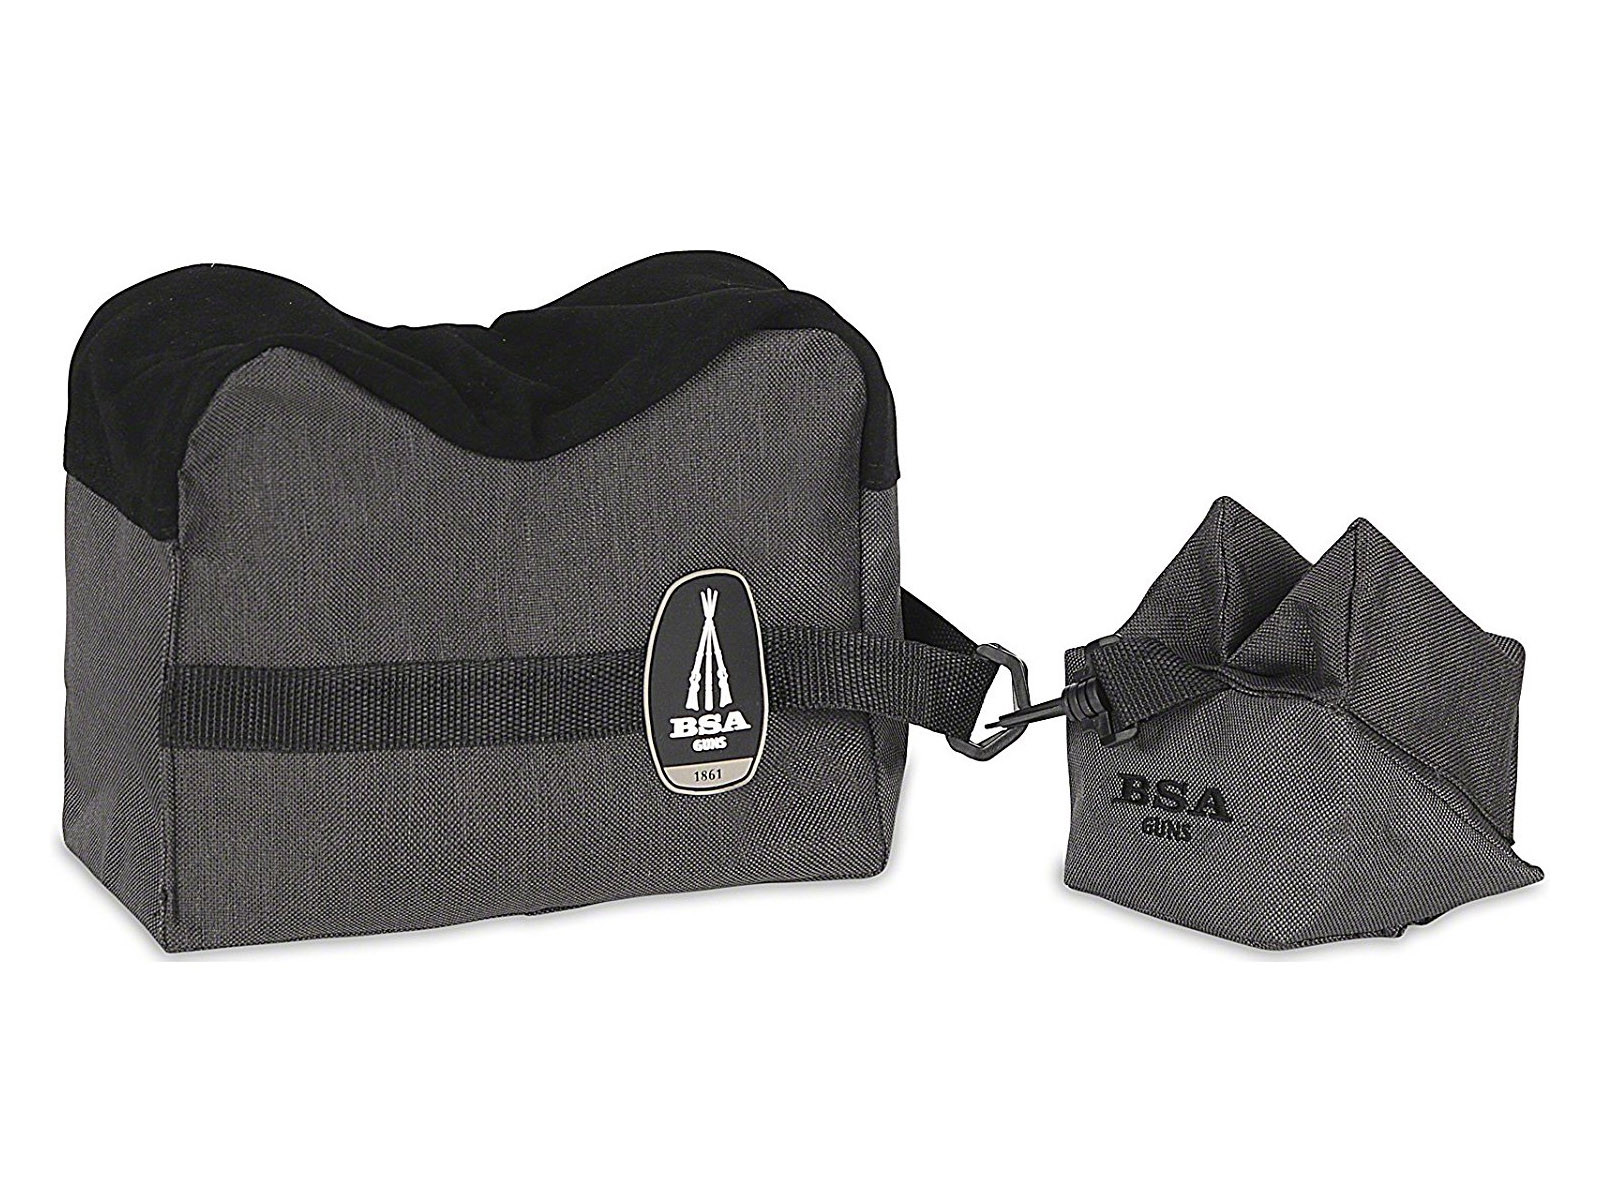 BSA Rest Bag